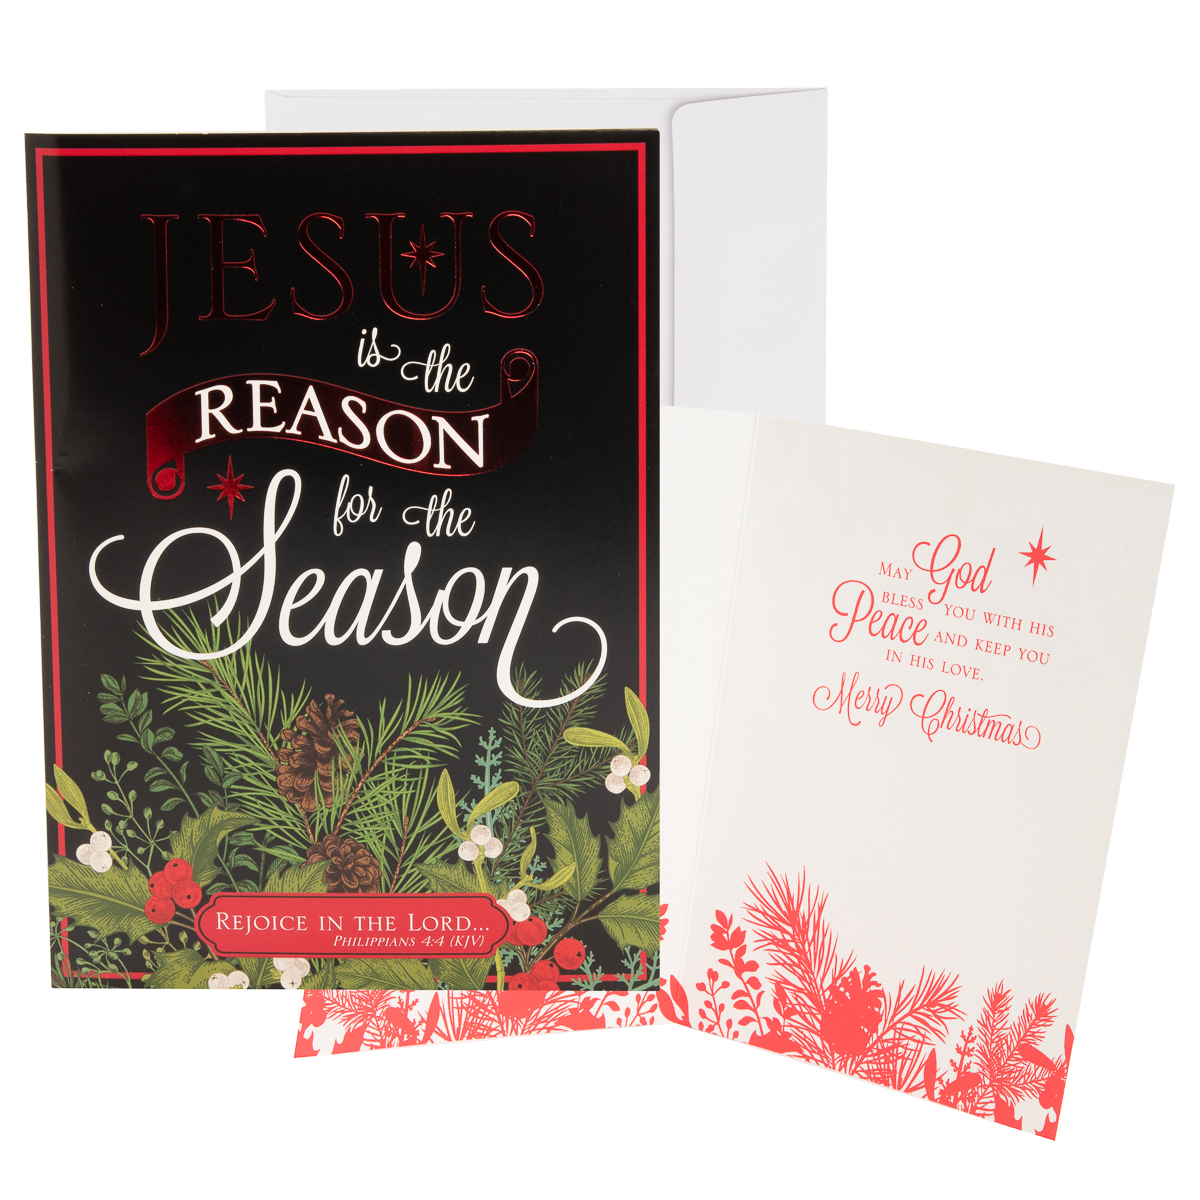 48pk-Merry-Christmas-Cards-Bulk-Assortment-Holiday-Card-Pack-with-Foil-amp-Glitter thumbnail 21